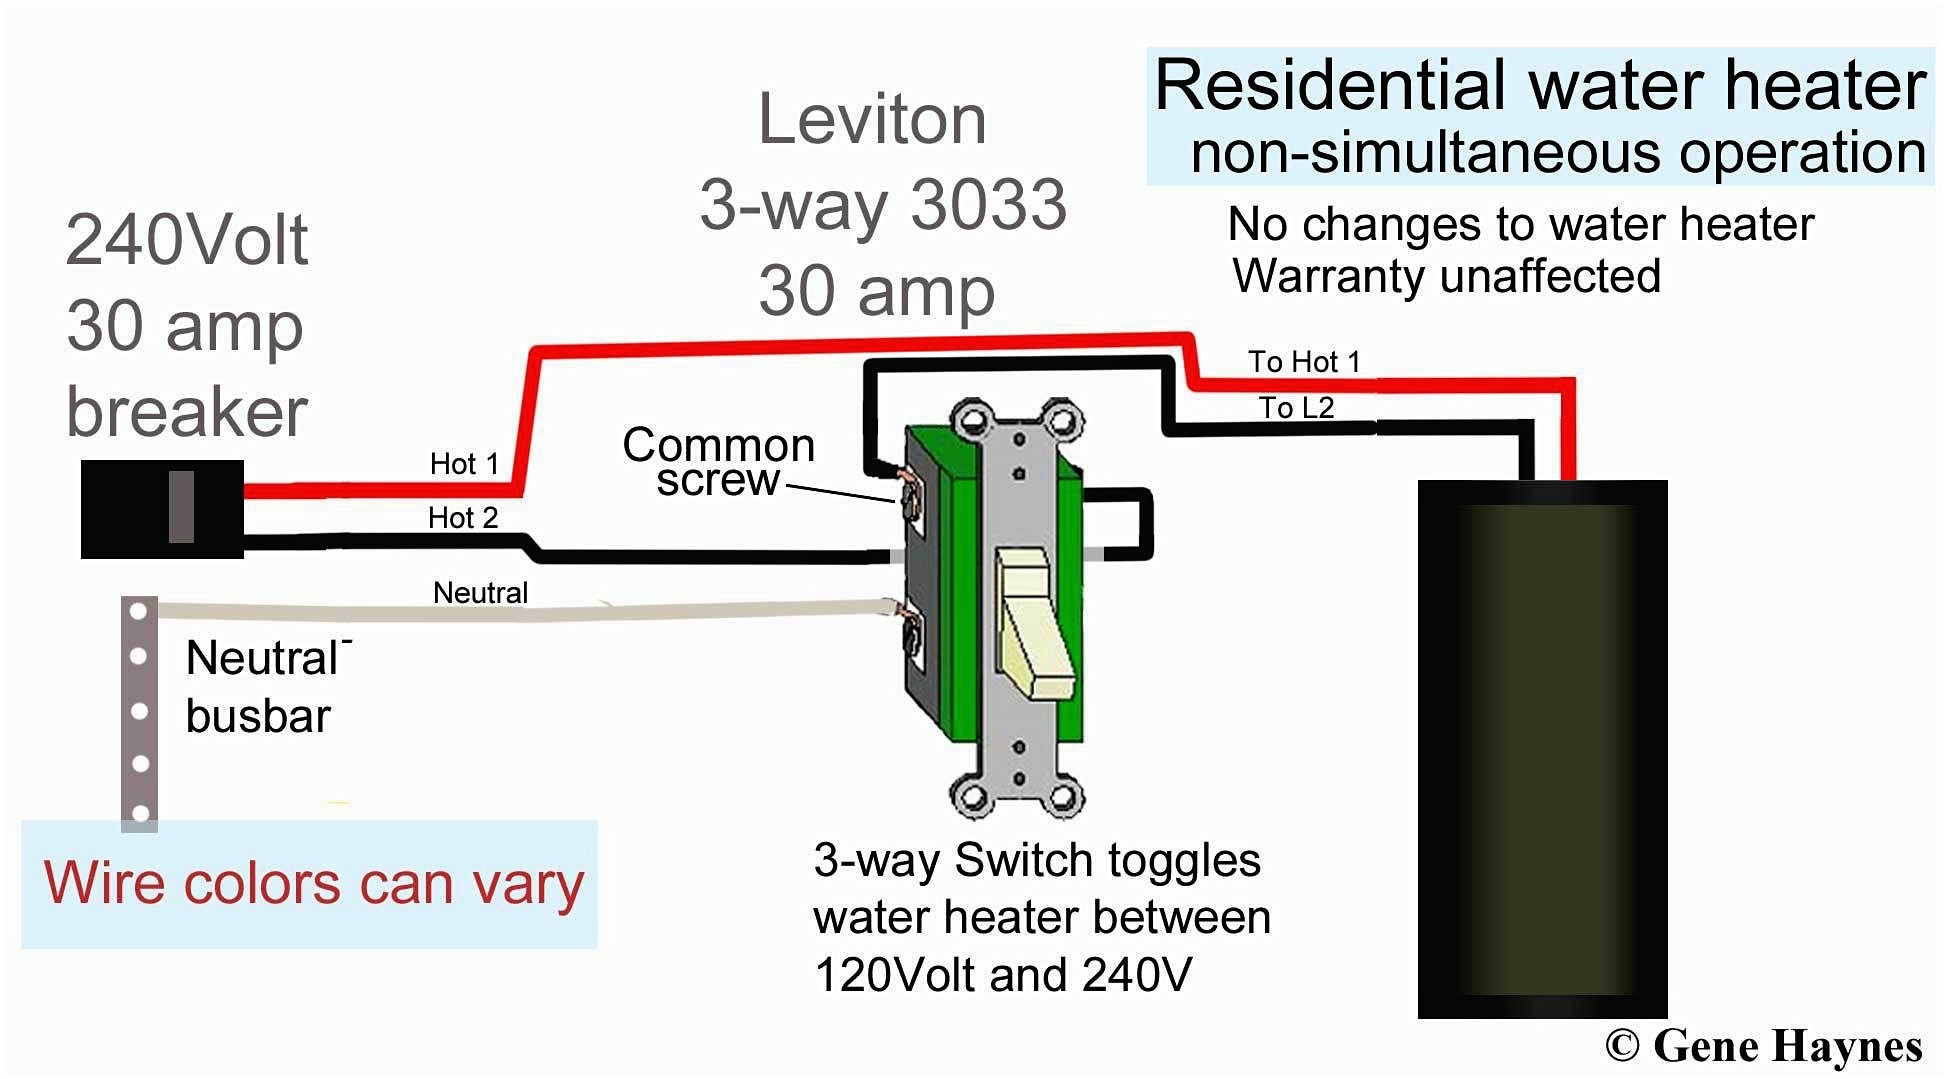 Leviton 3 Way Switch Wiring Diagram Decora | Wiring Diagram - Leviton 3 Way Switch Wiring Diagram